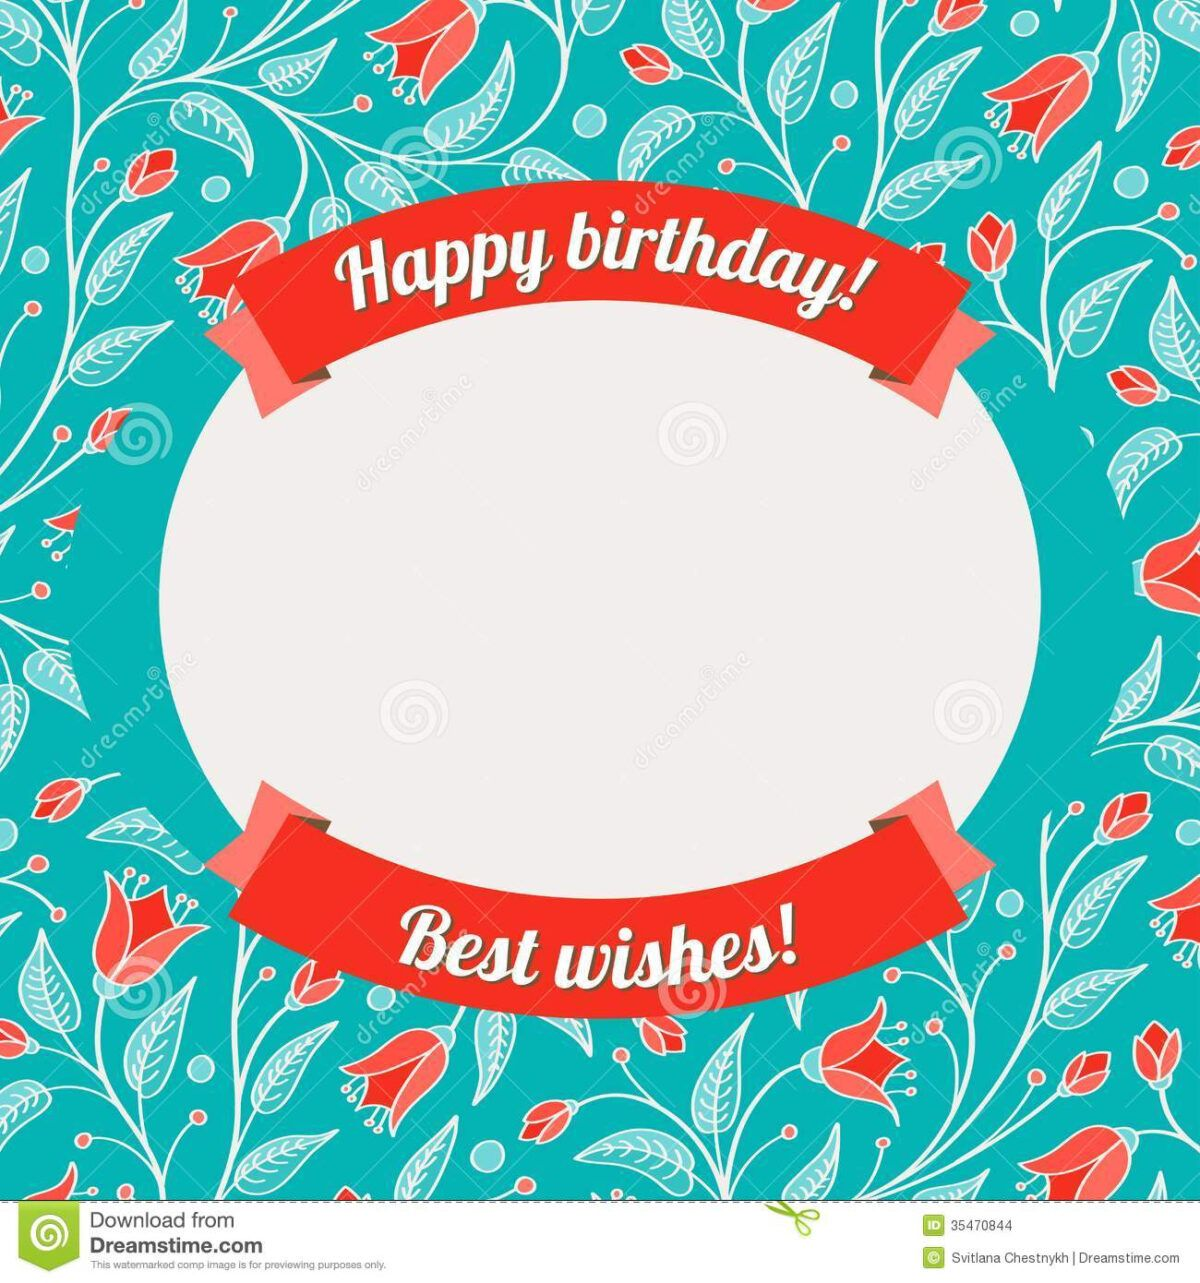 Template For Greeting Card Or Invitation Stock Vector In Greeting Card Layout Templates Unique Birthday Cards 30th Birthday Cards Free Birthday Card